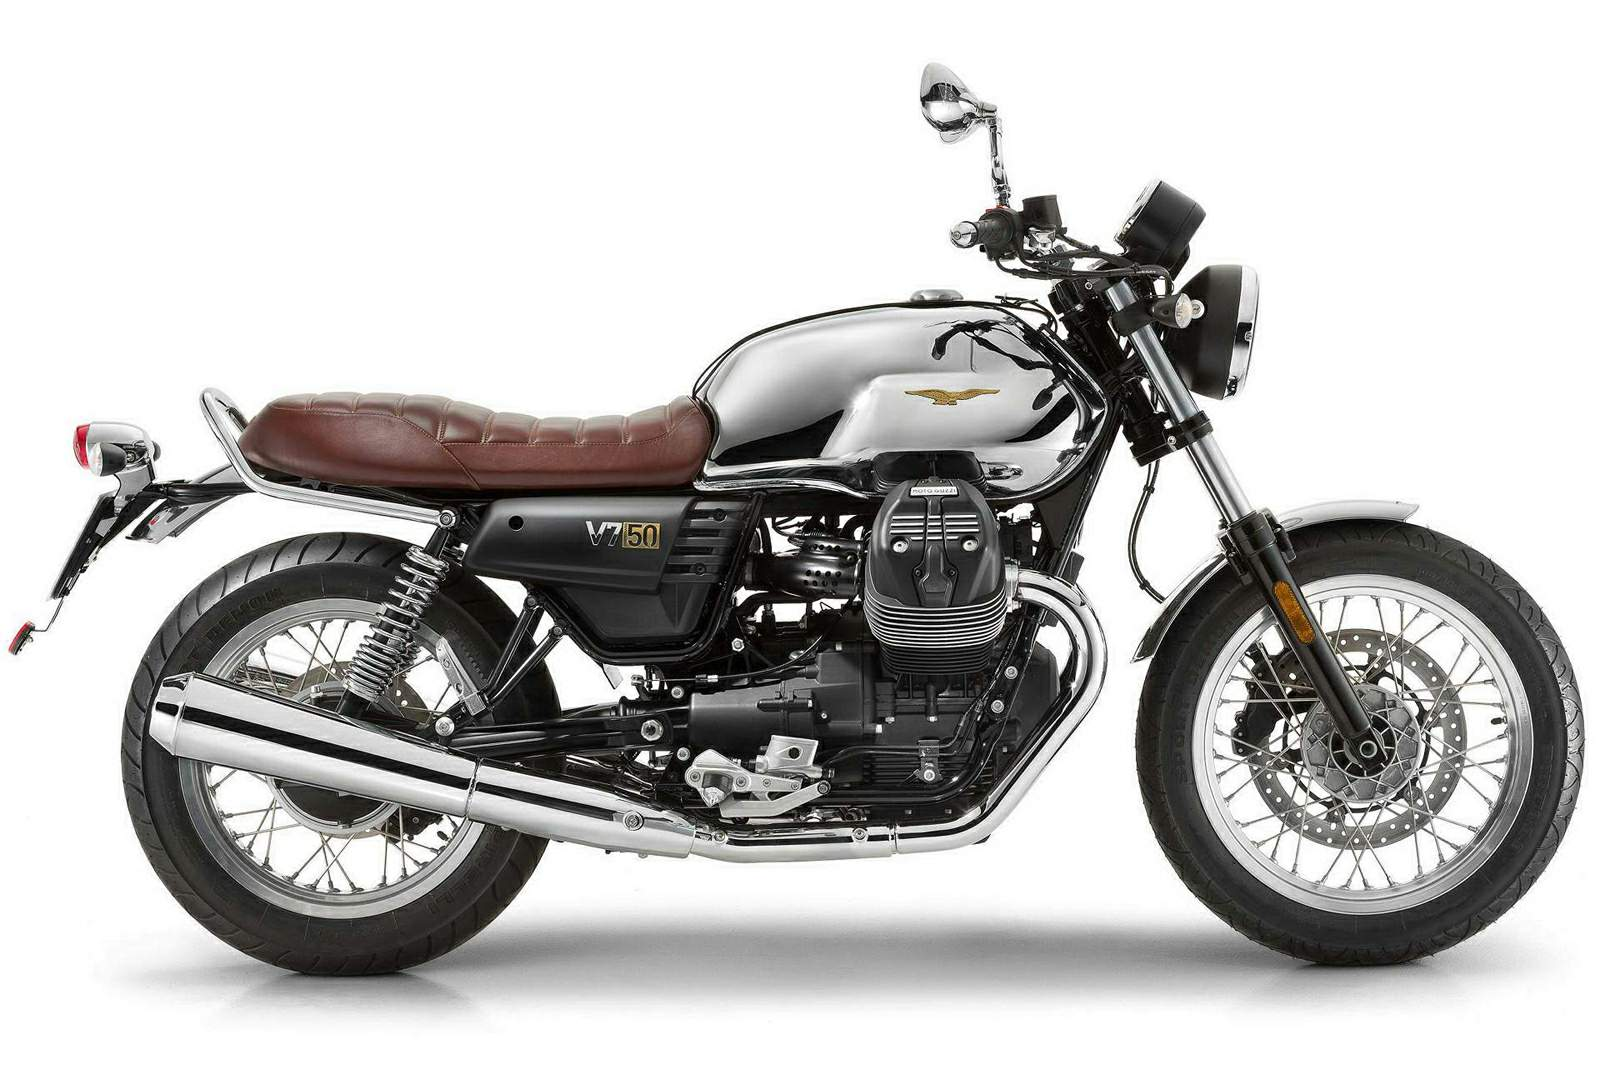 DEF in addition Vw Passat R36 Full Supersprint Exhaust Acceleration in addition Yamaha Nmax 125 Exhaust Systems as well Watch as well Moto guzzi v 7 III Anniversario 17. on catalytic converter exhaust system